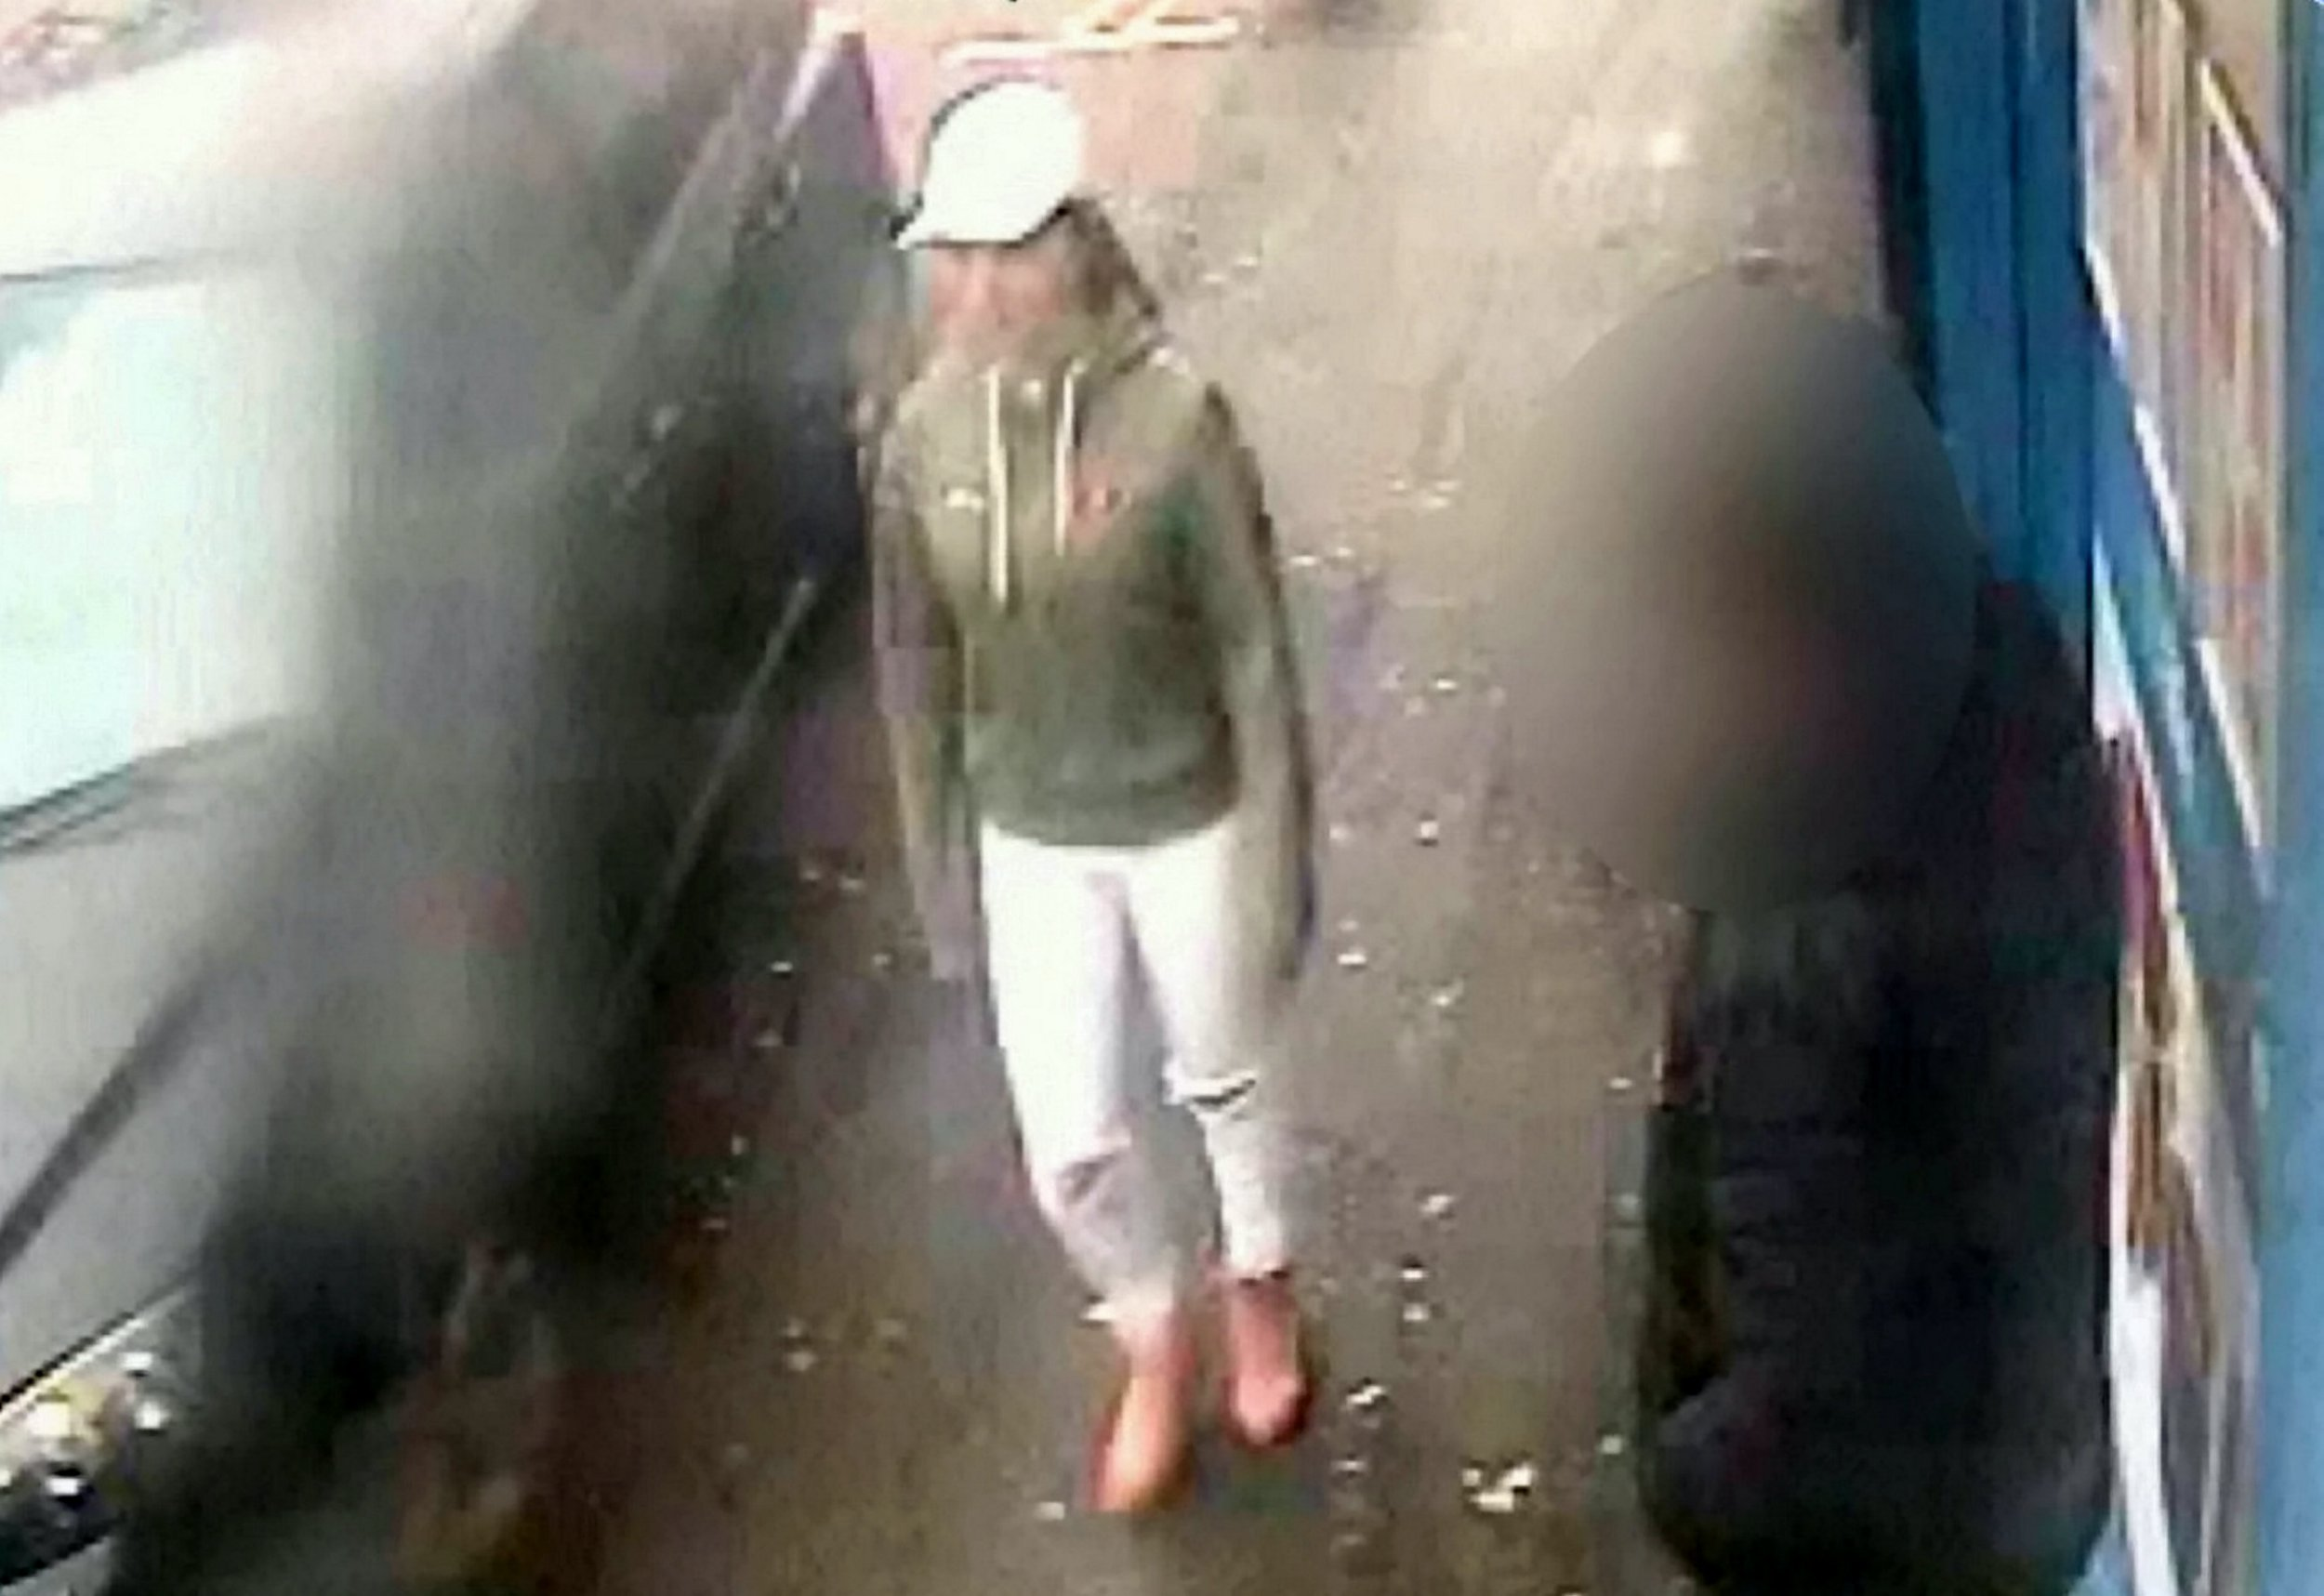 Chilling CCTV captures the final moments of a schoolgirl as she walks towards a park where she was allegedly brutally raped and murdered by a pal. See SWNS story SWMDmurder. Viktorija Sokolova, 14, sneaked out of her house to meet a boy she has been exchanging Facebook messages with on April 11 this year. The following morning her half-naked body was discovered by a dog walker propped up against a bench in West Park, Wolverhampton. A 16-year-old boy, who cannot be named, has gone on trial charged with murder and rape at Wolverhampton Crown Court. A jury of eight women and four men were today (Thurs) continuing a second day of deliberations as they considered their verdict.